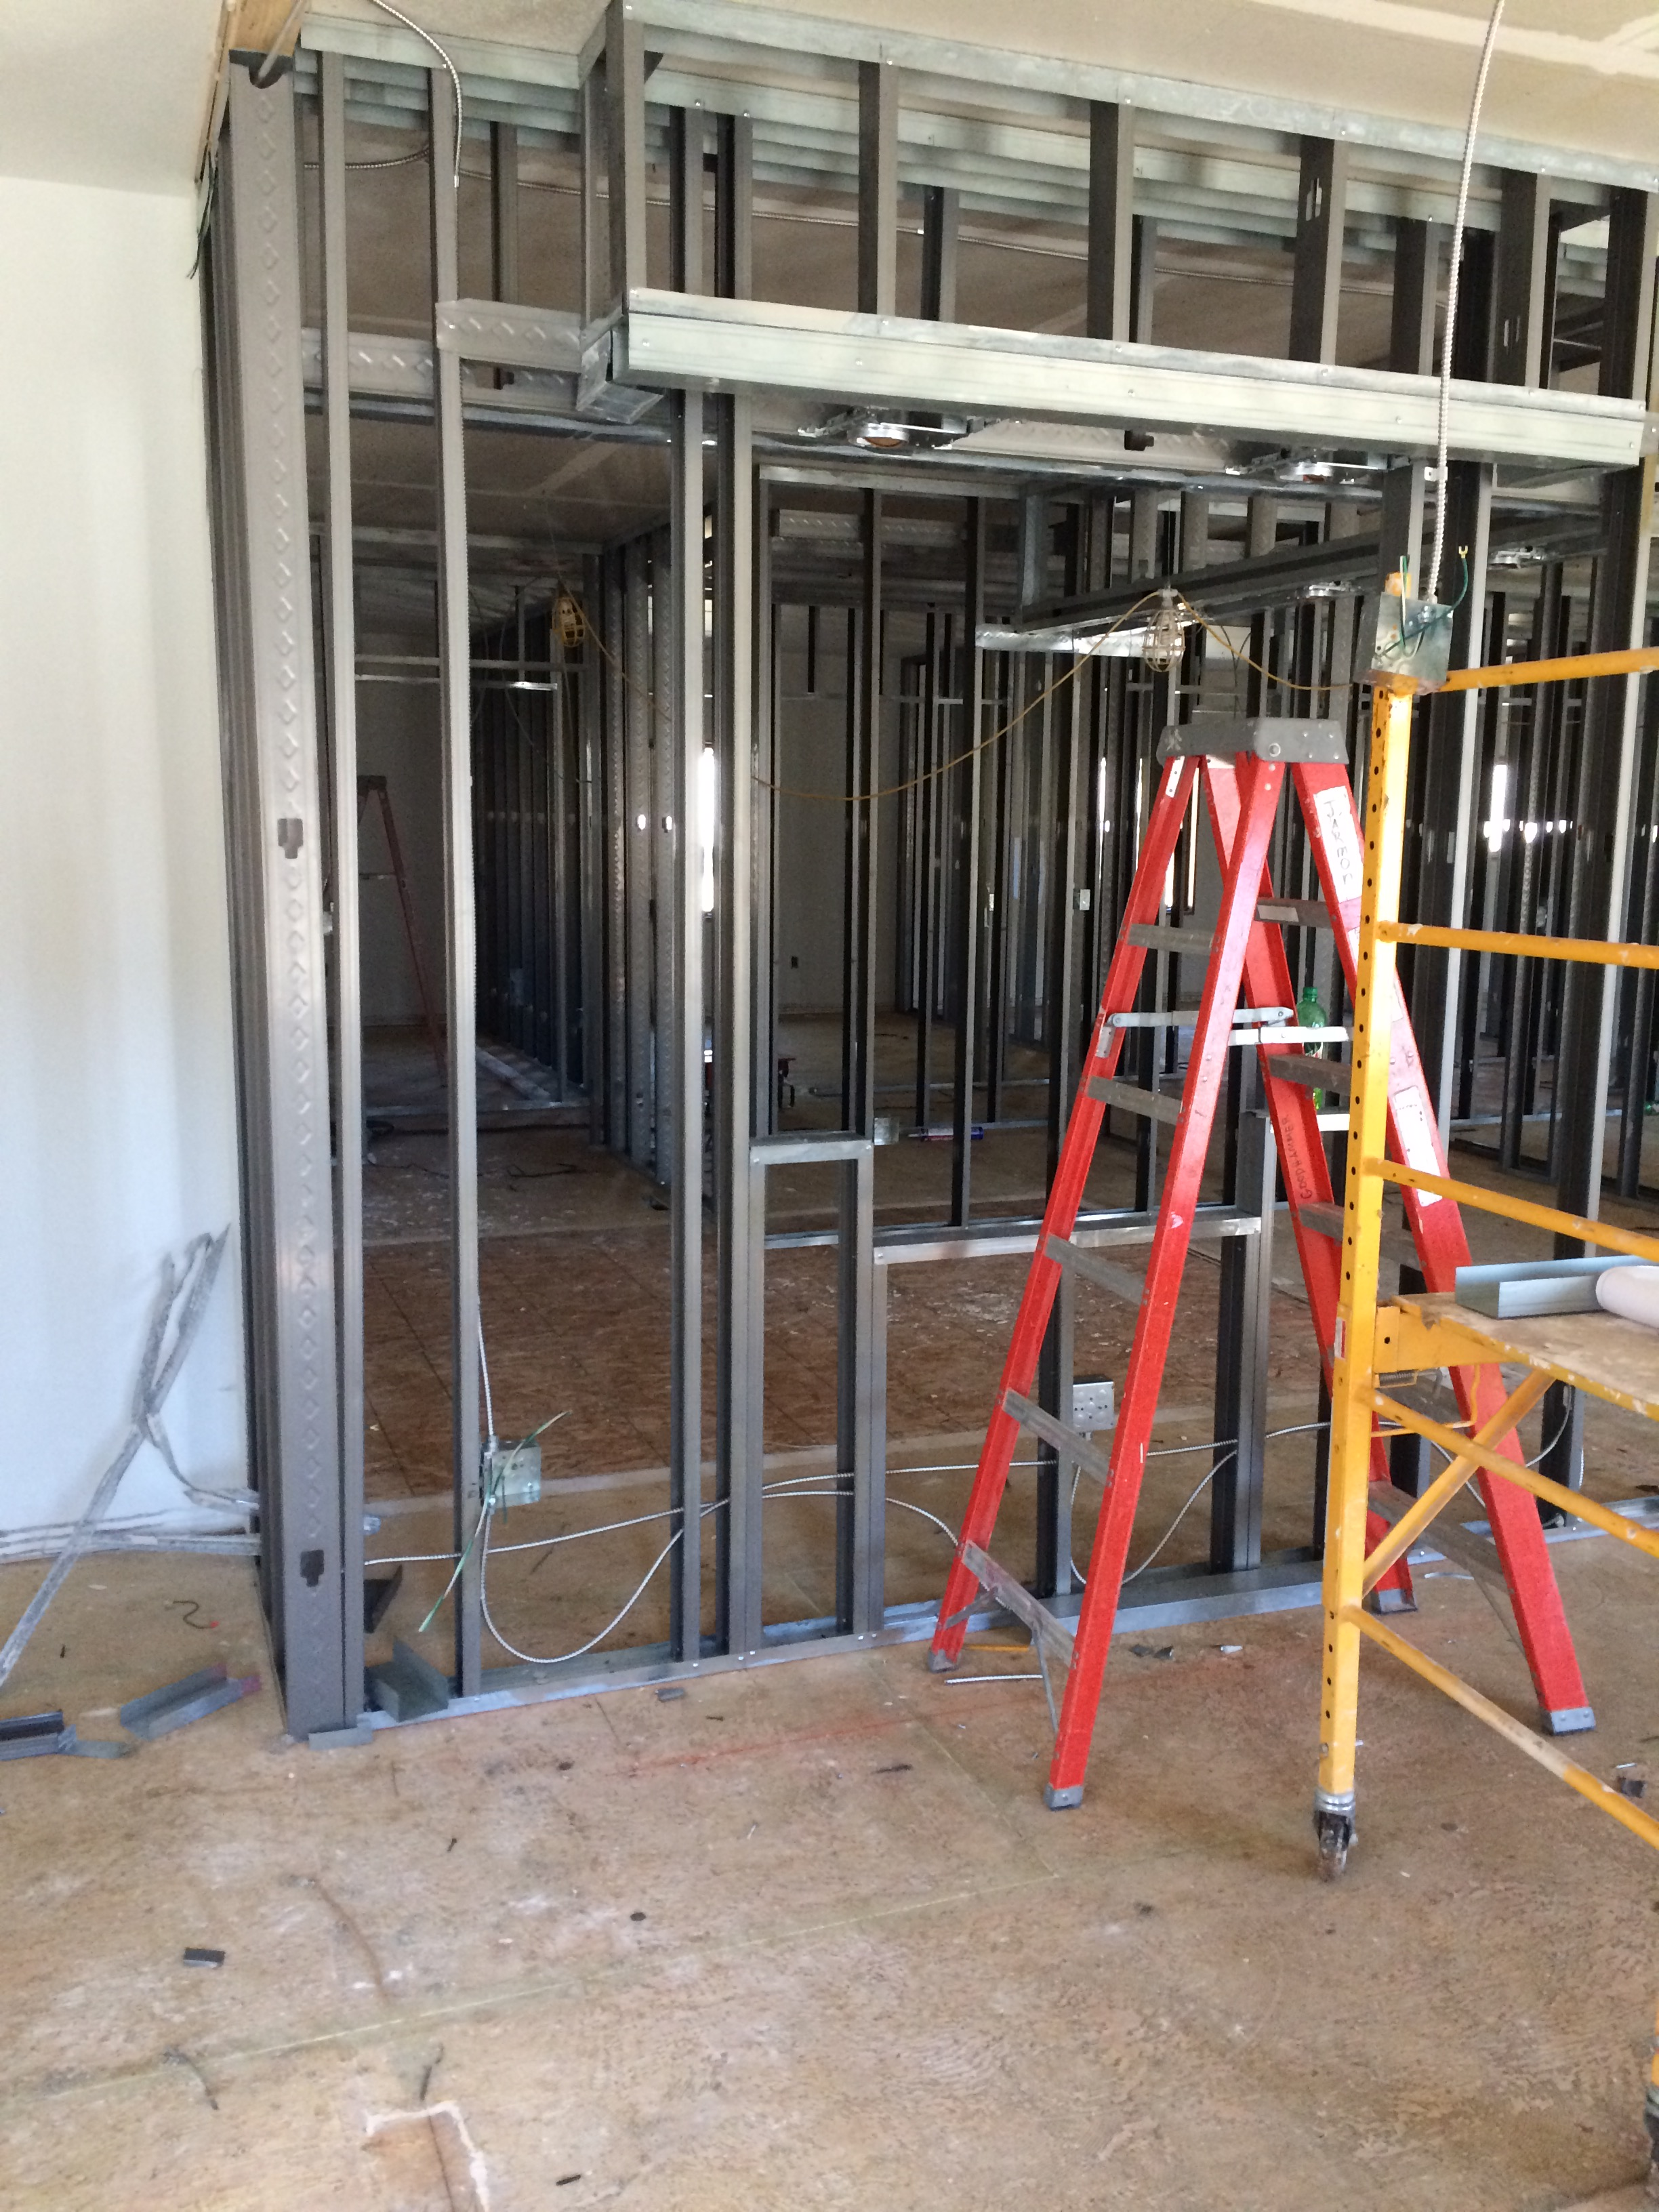 We have walls! Future Check-in Area